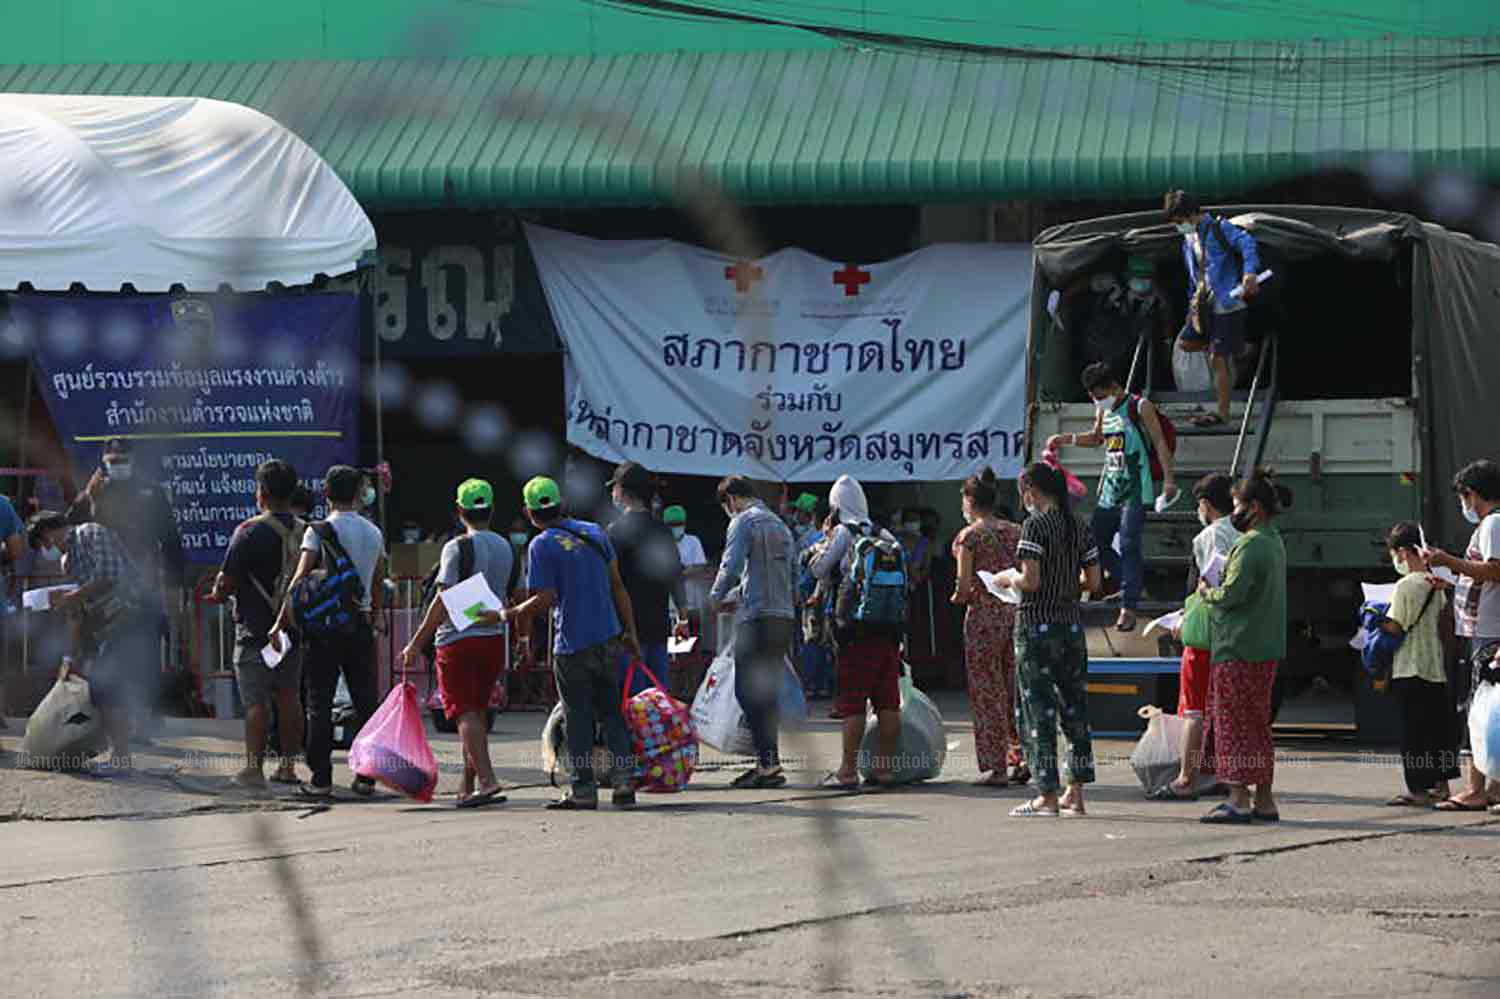 Migrant workers are being discharged from a field hospital in Samut Sakhon province early last month. (Photo: Arnun Chonmahatrakool)